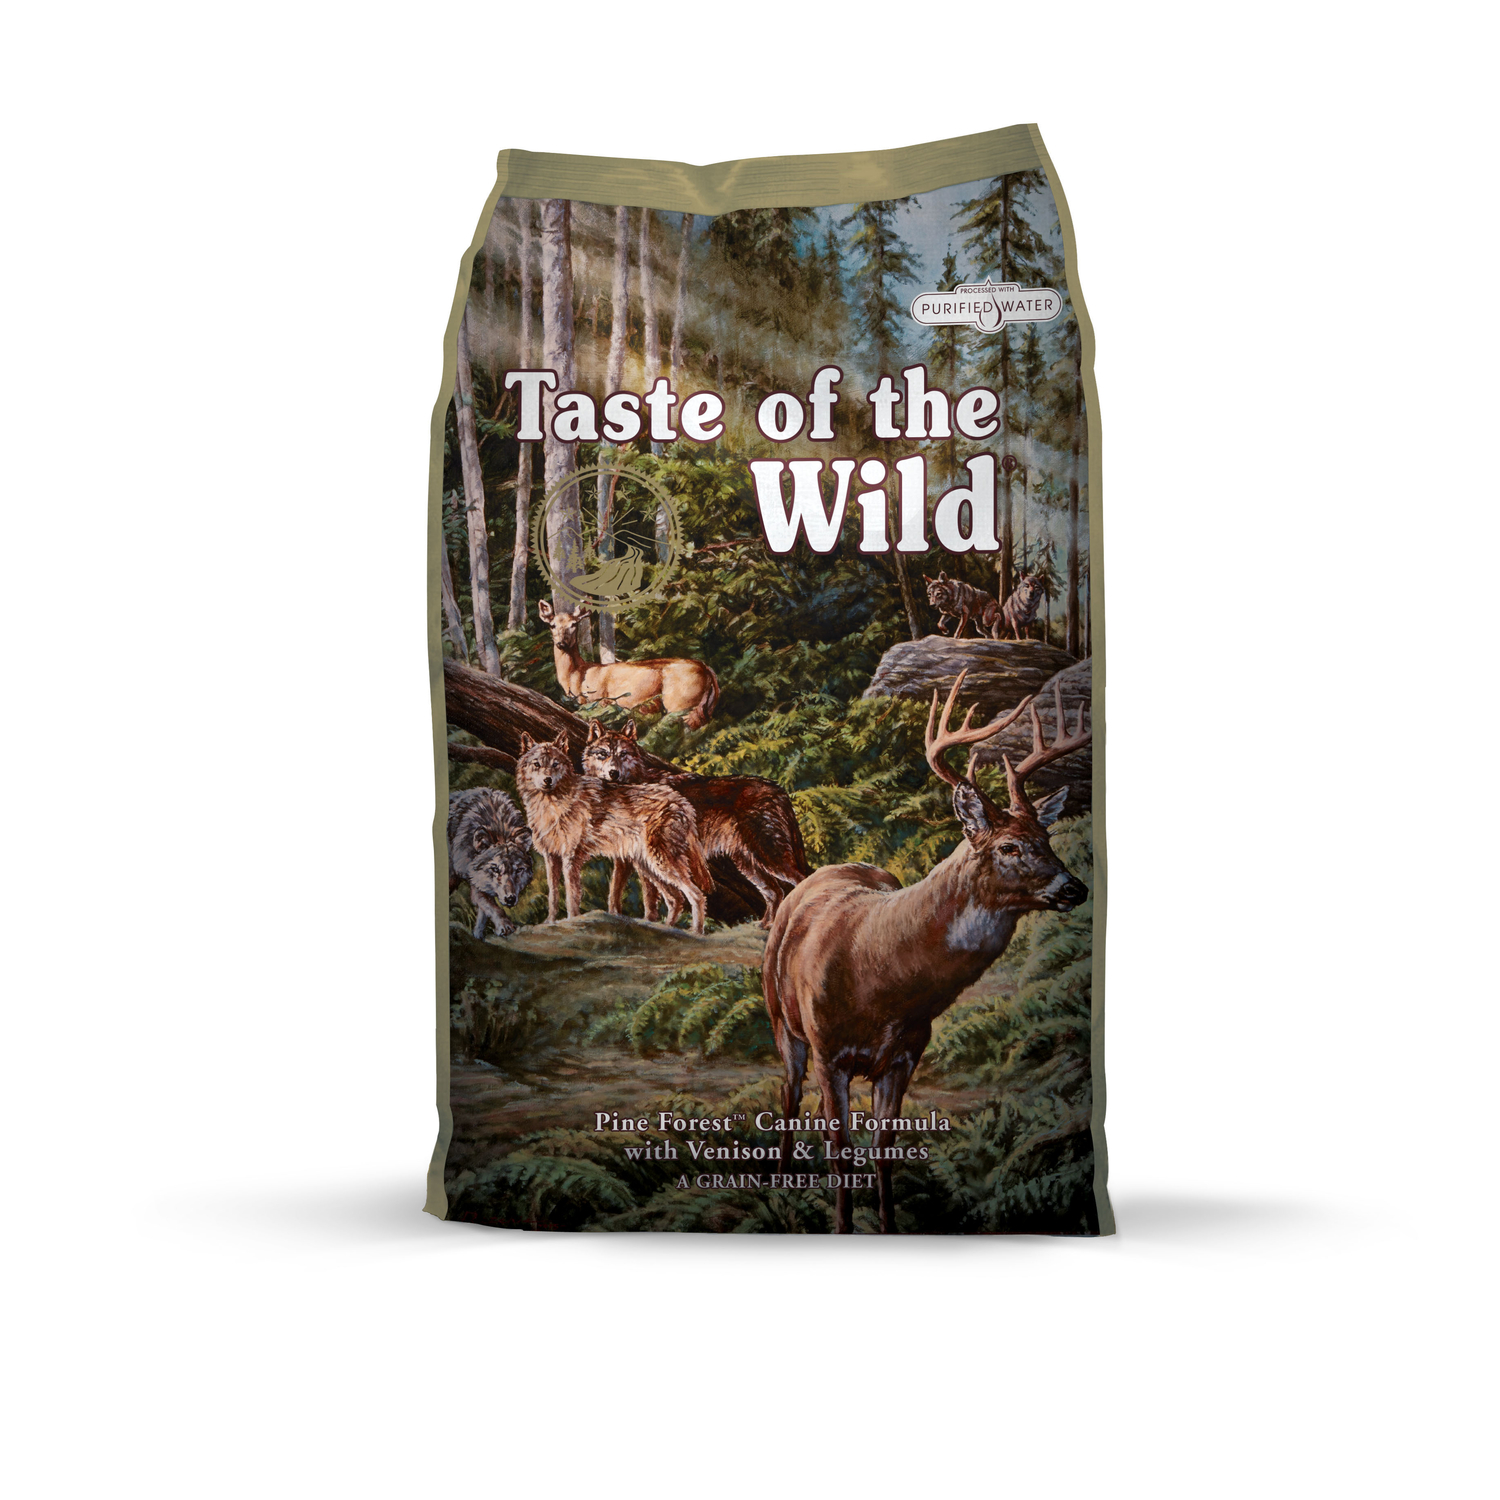 Taste of the Wild  Pine Forest  Vension/Legumes  Dog  Food  Grain Free 5